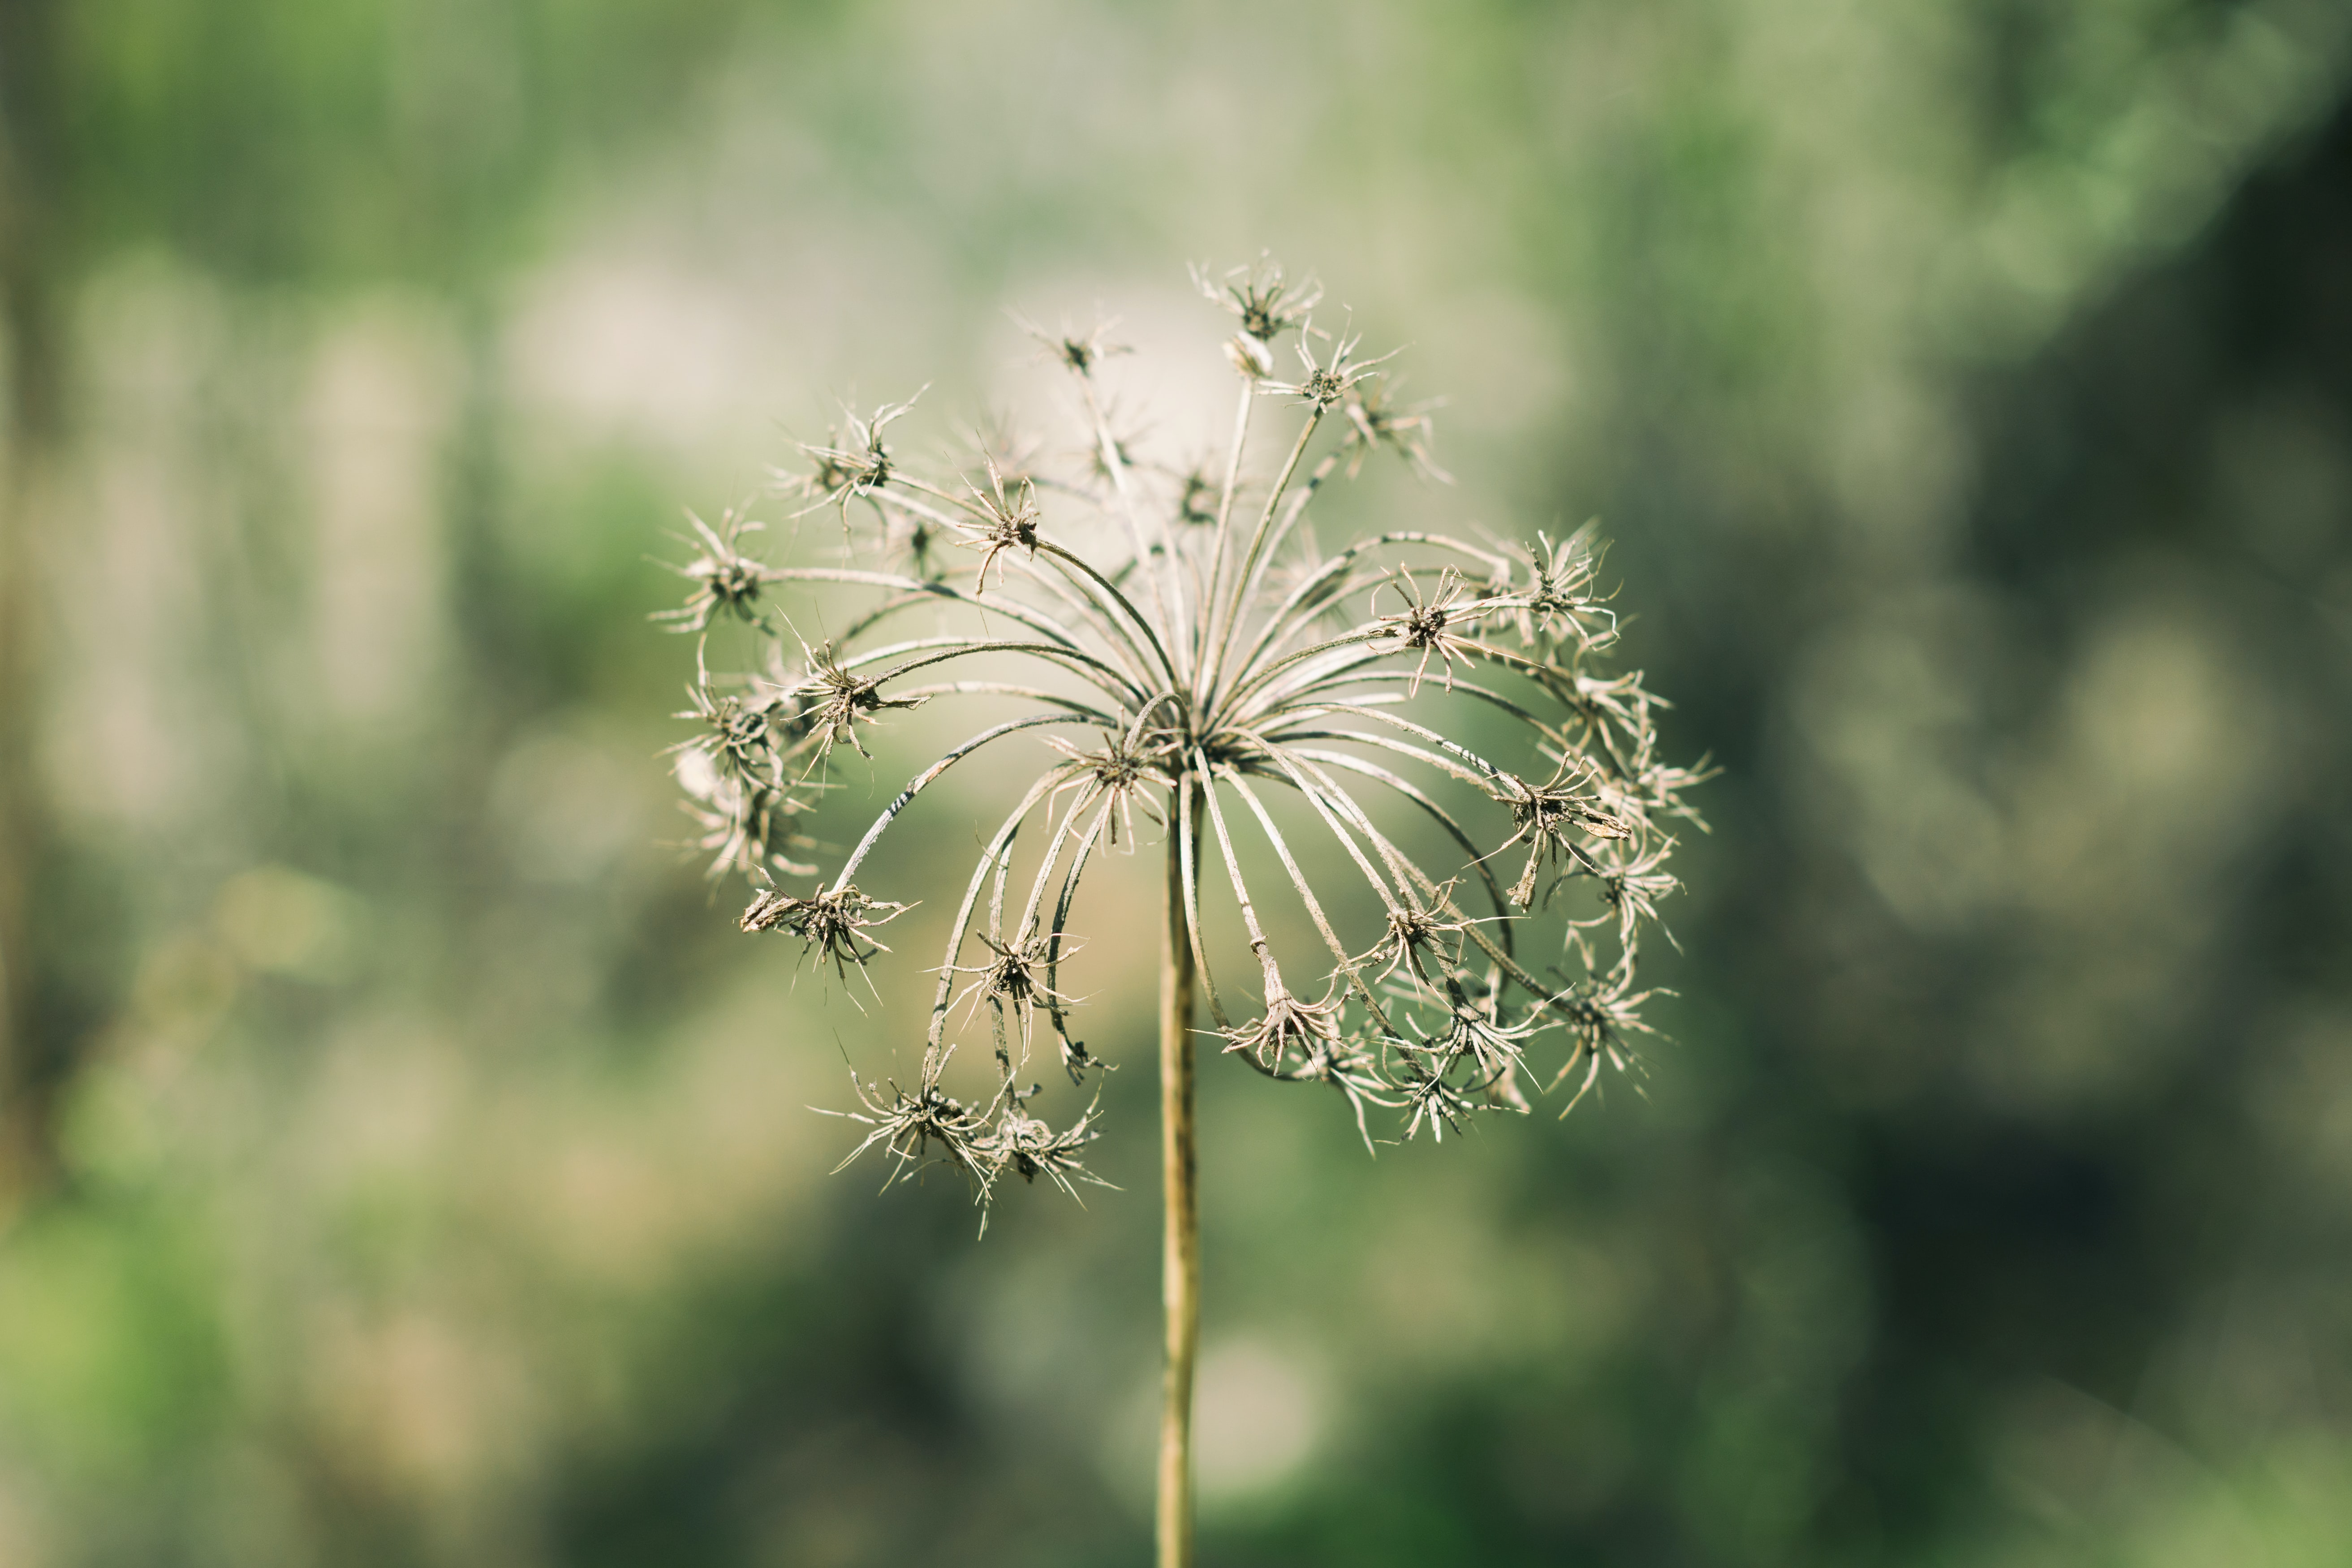 white dandelion flower in closeup photography